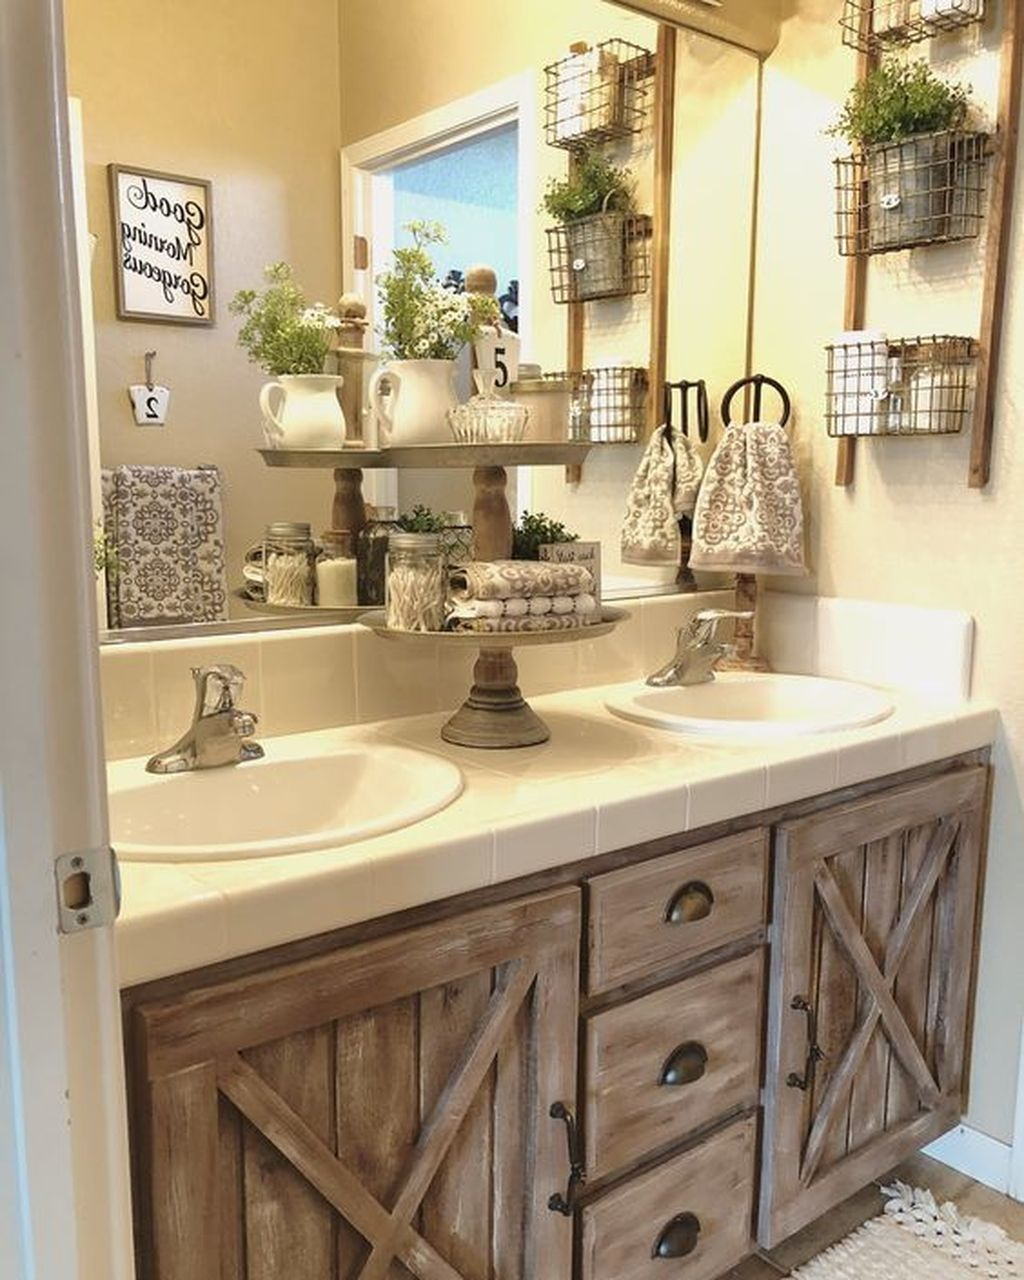 50 Lovely Bathroom Decor Ideas With Farmhouse Style - A-contemporary-home-blessed-with-some-rustic-magic